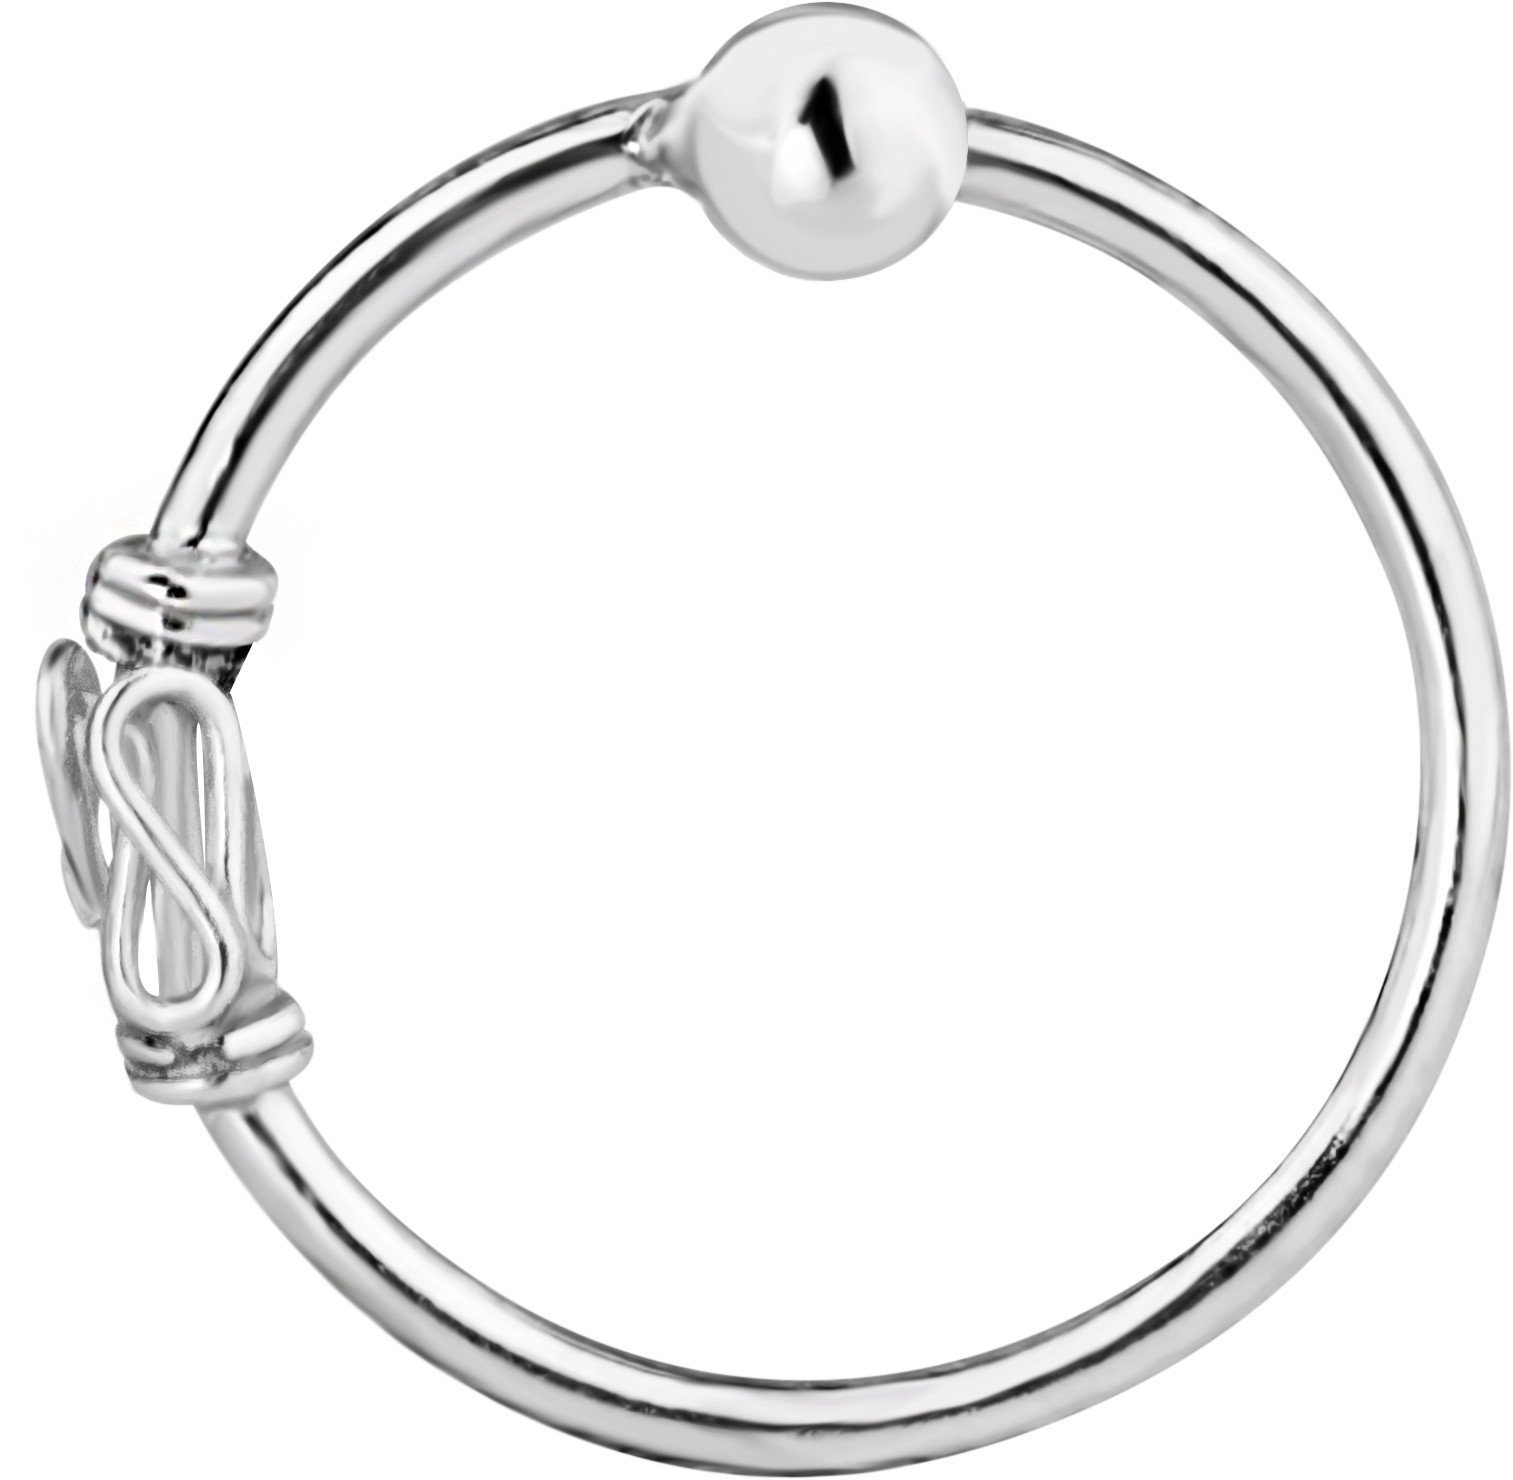 20g Sterling Silver Bali Style Nose Hoop